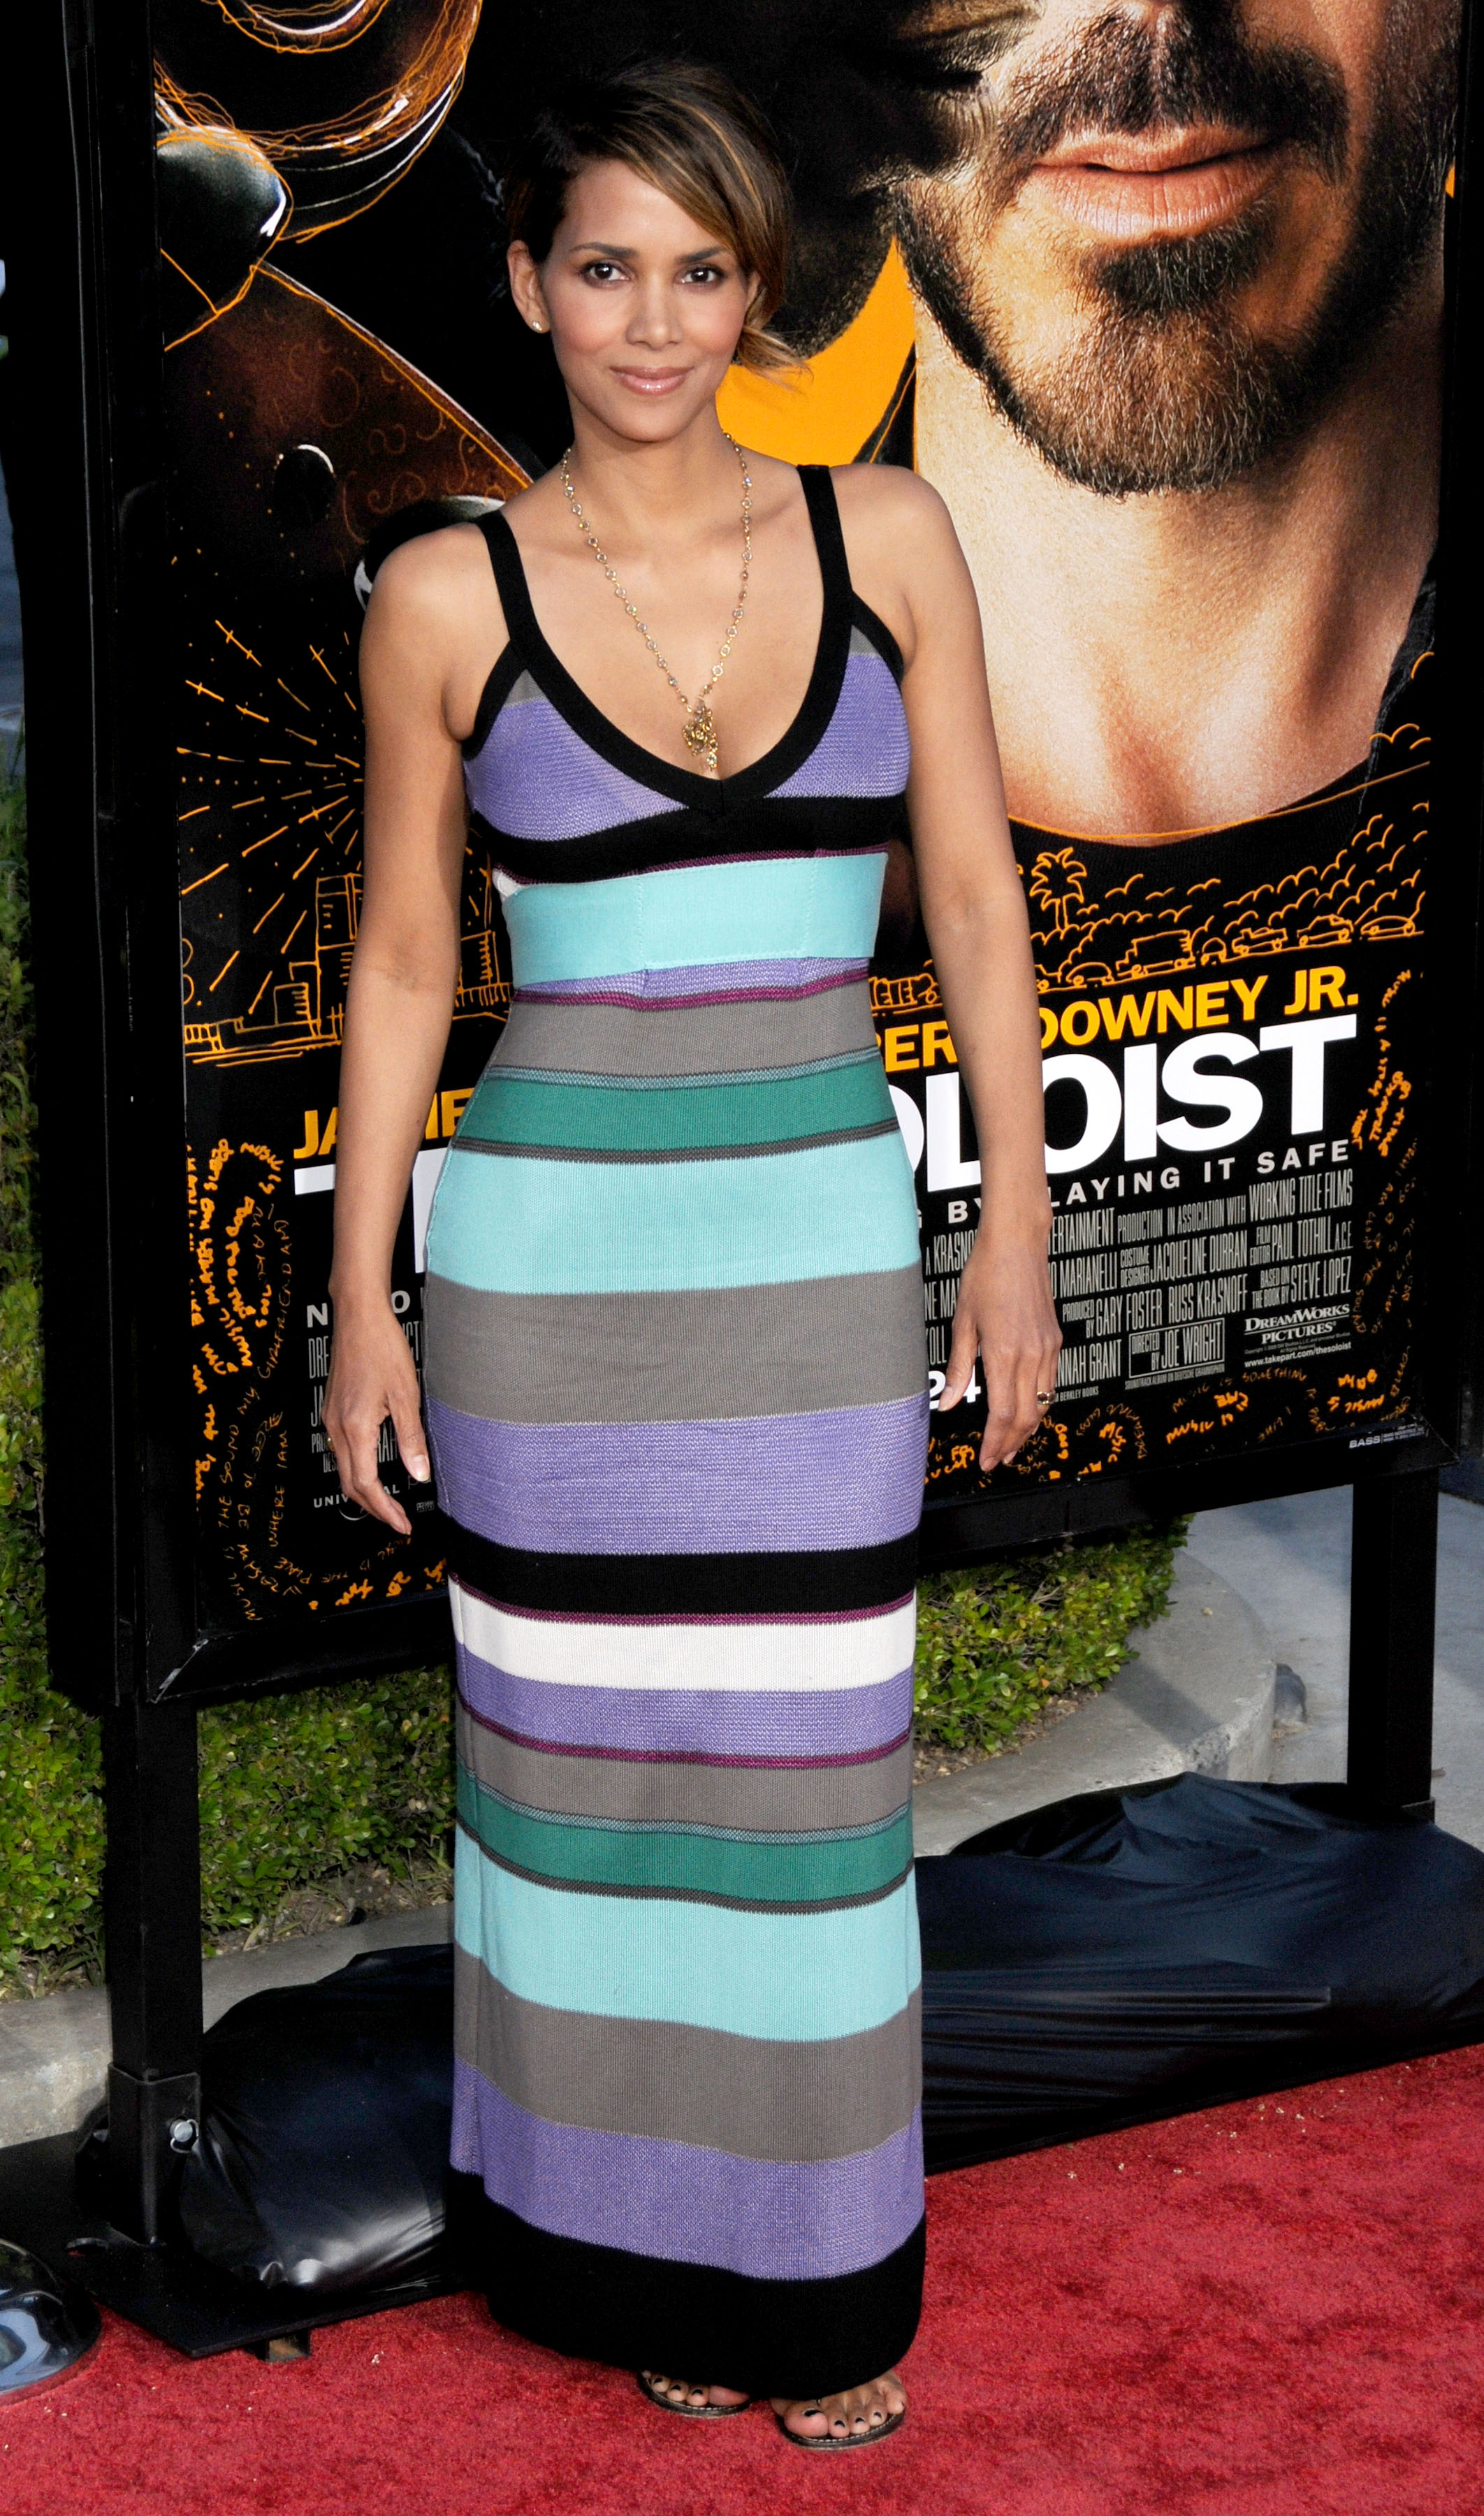 68170_Halle_Berry_The_Soloist_premiere_in_Los_Angeles_30_122_474lo.jpg